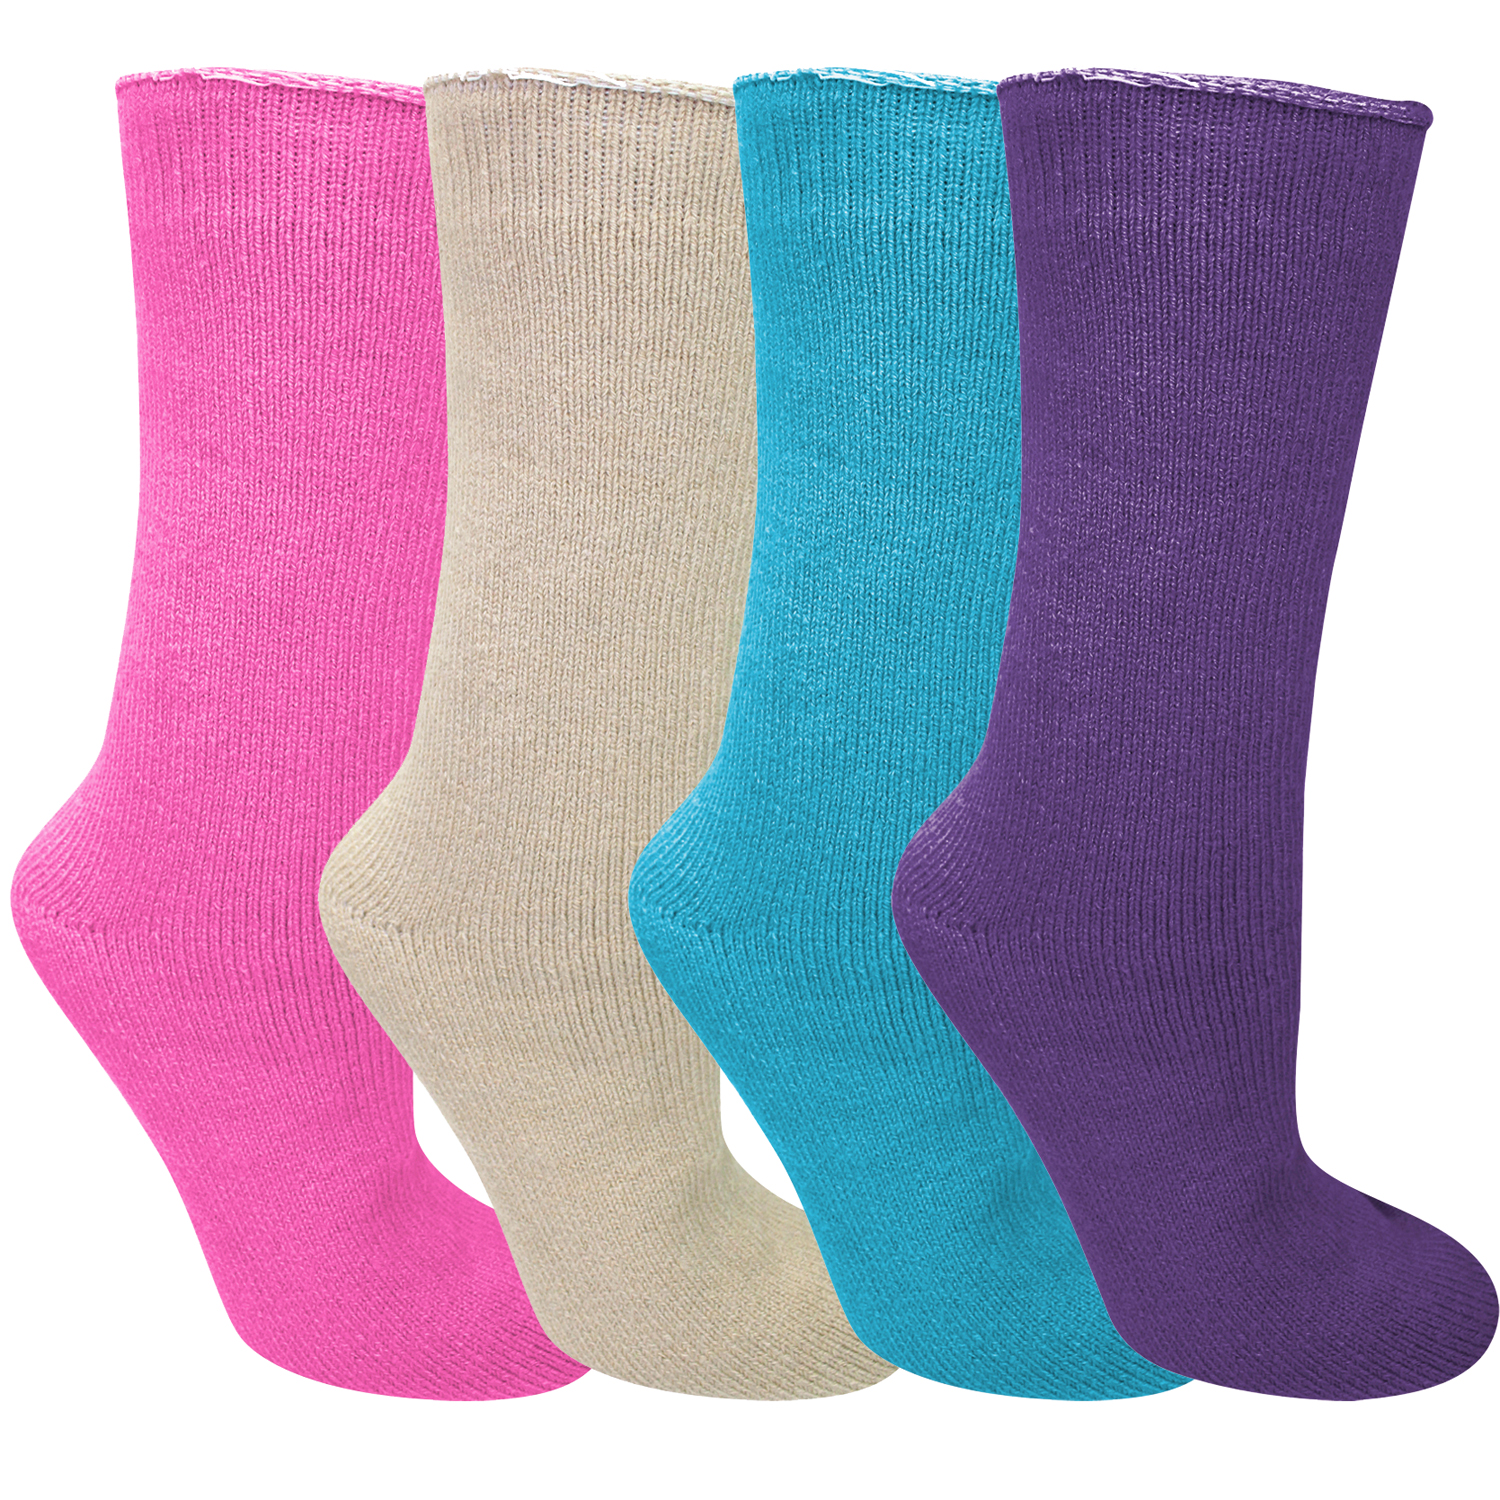 Bright Color Thick Thermal Heated Socks 4-Pack by Heated Socks